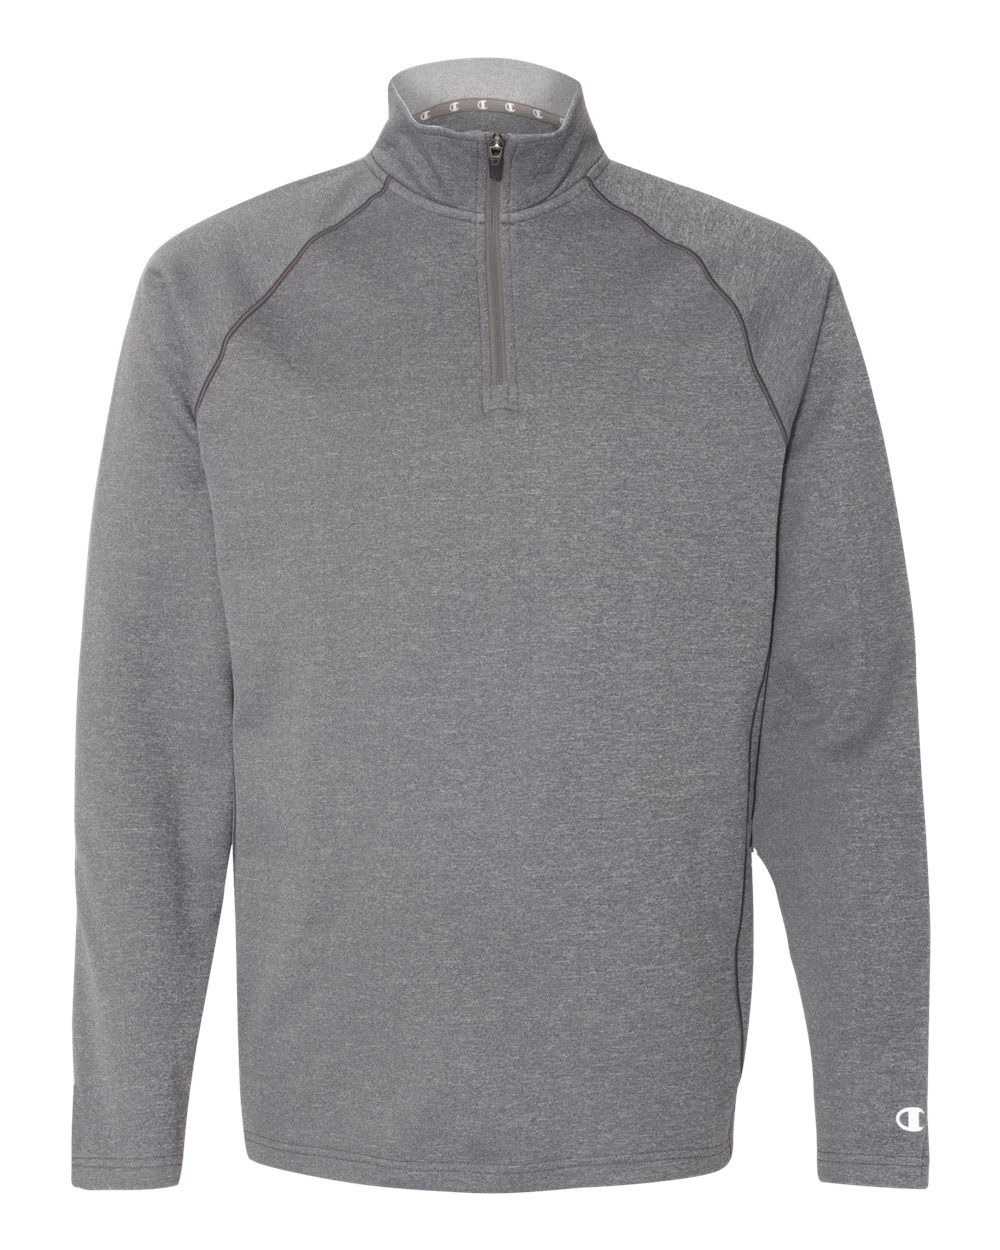 Champion 5.4 oz Performance Colorblock Quarter-Zip Pullover